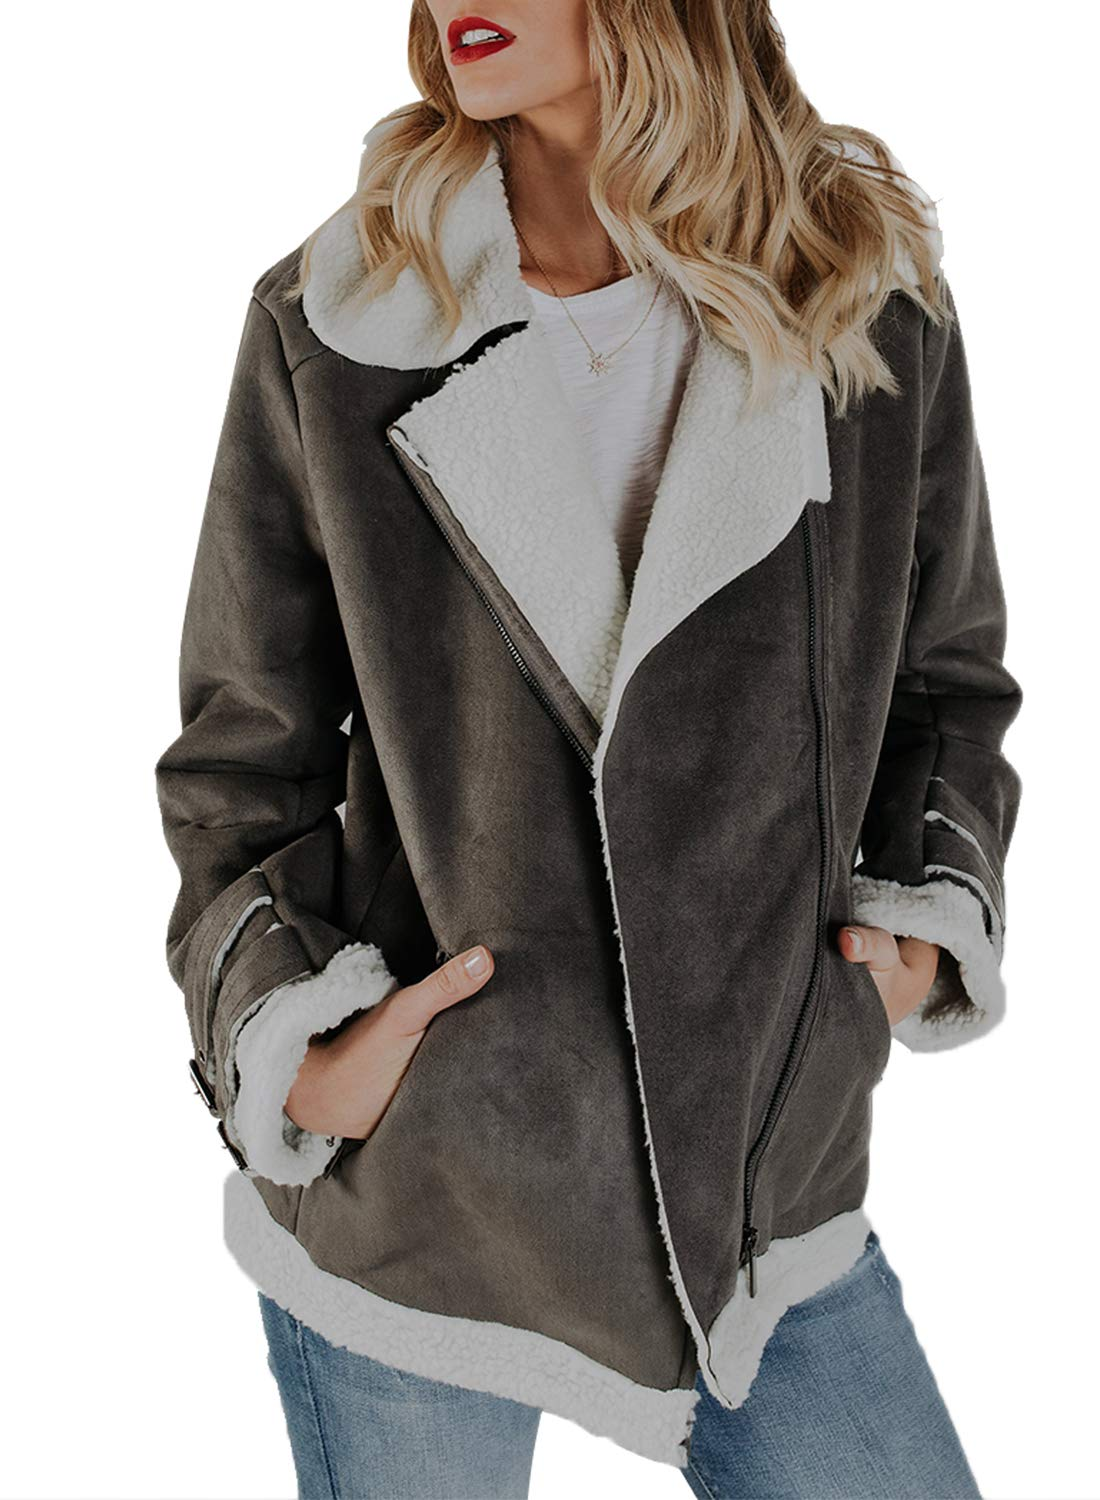 Sidefeel Women Faux Suede Jacket Zipper Up Front Coat Outwear with Pockets XX-Large Grey